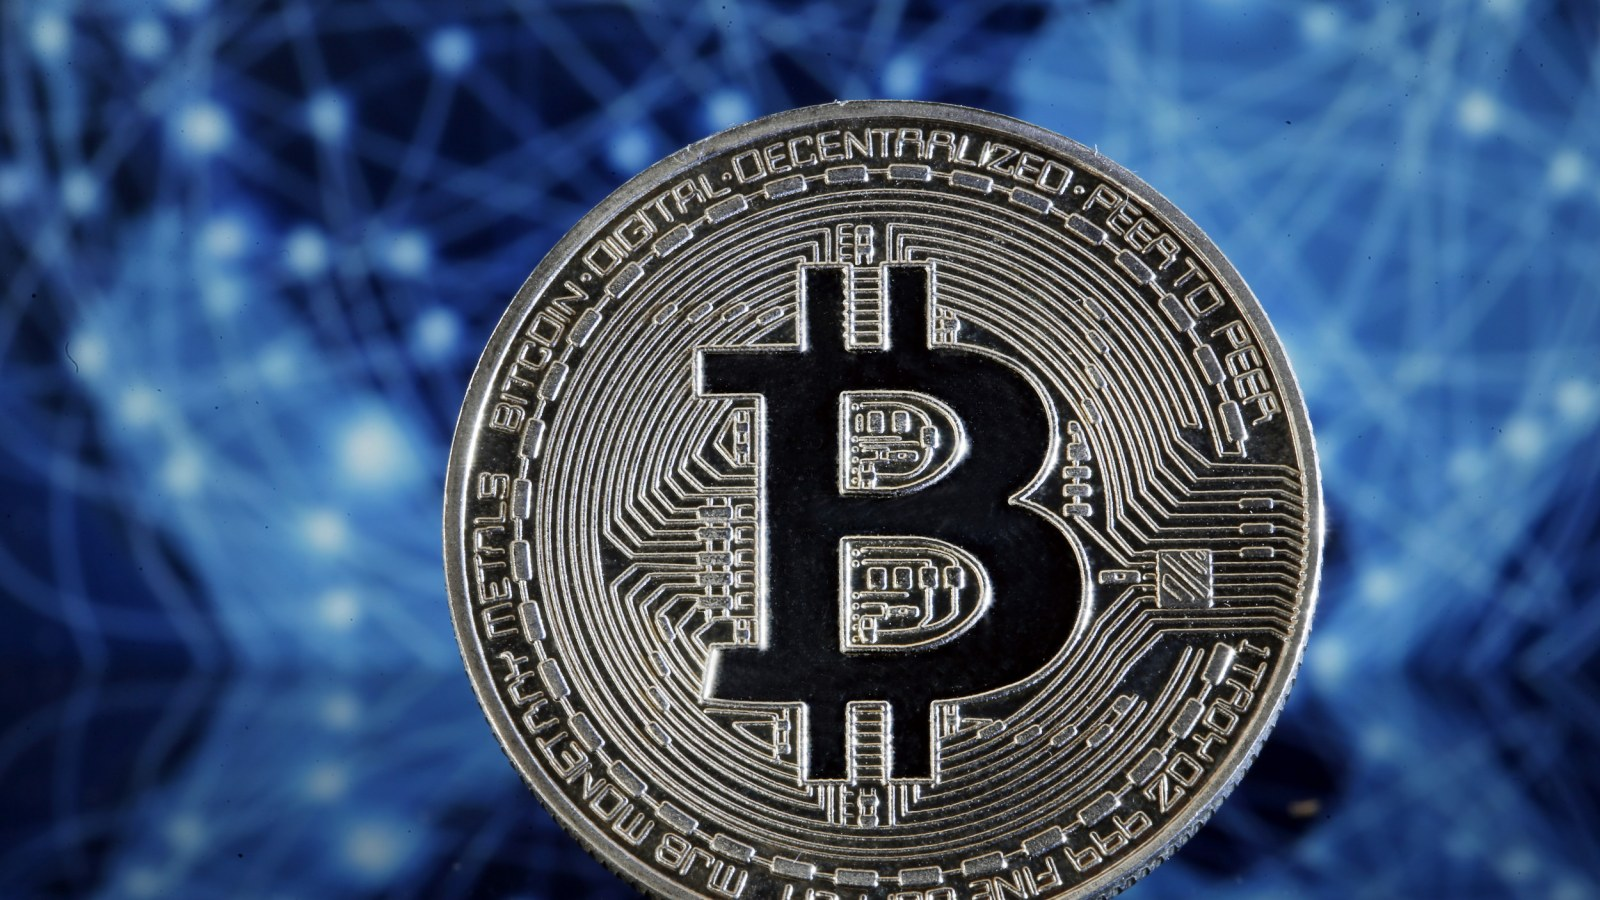 60 million bitcoins stolen cars fourfold betting rules for horse